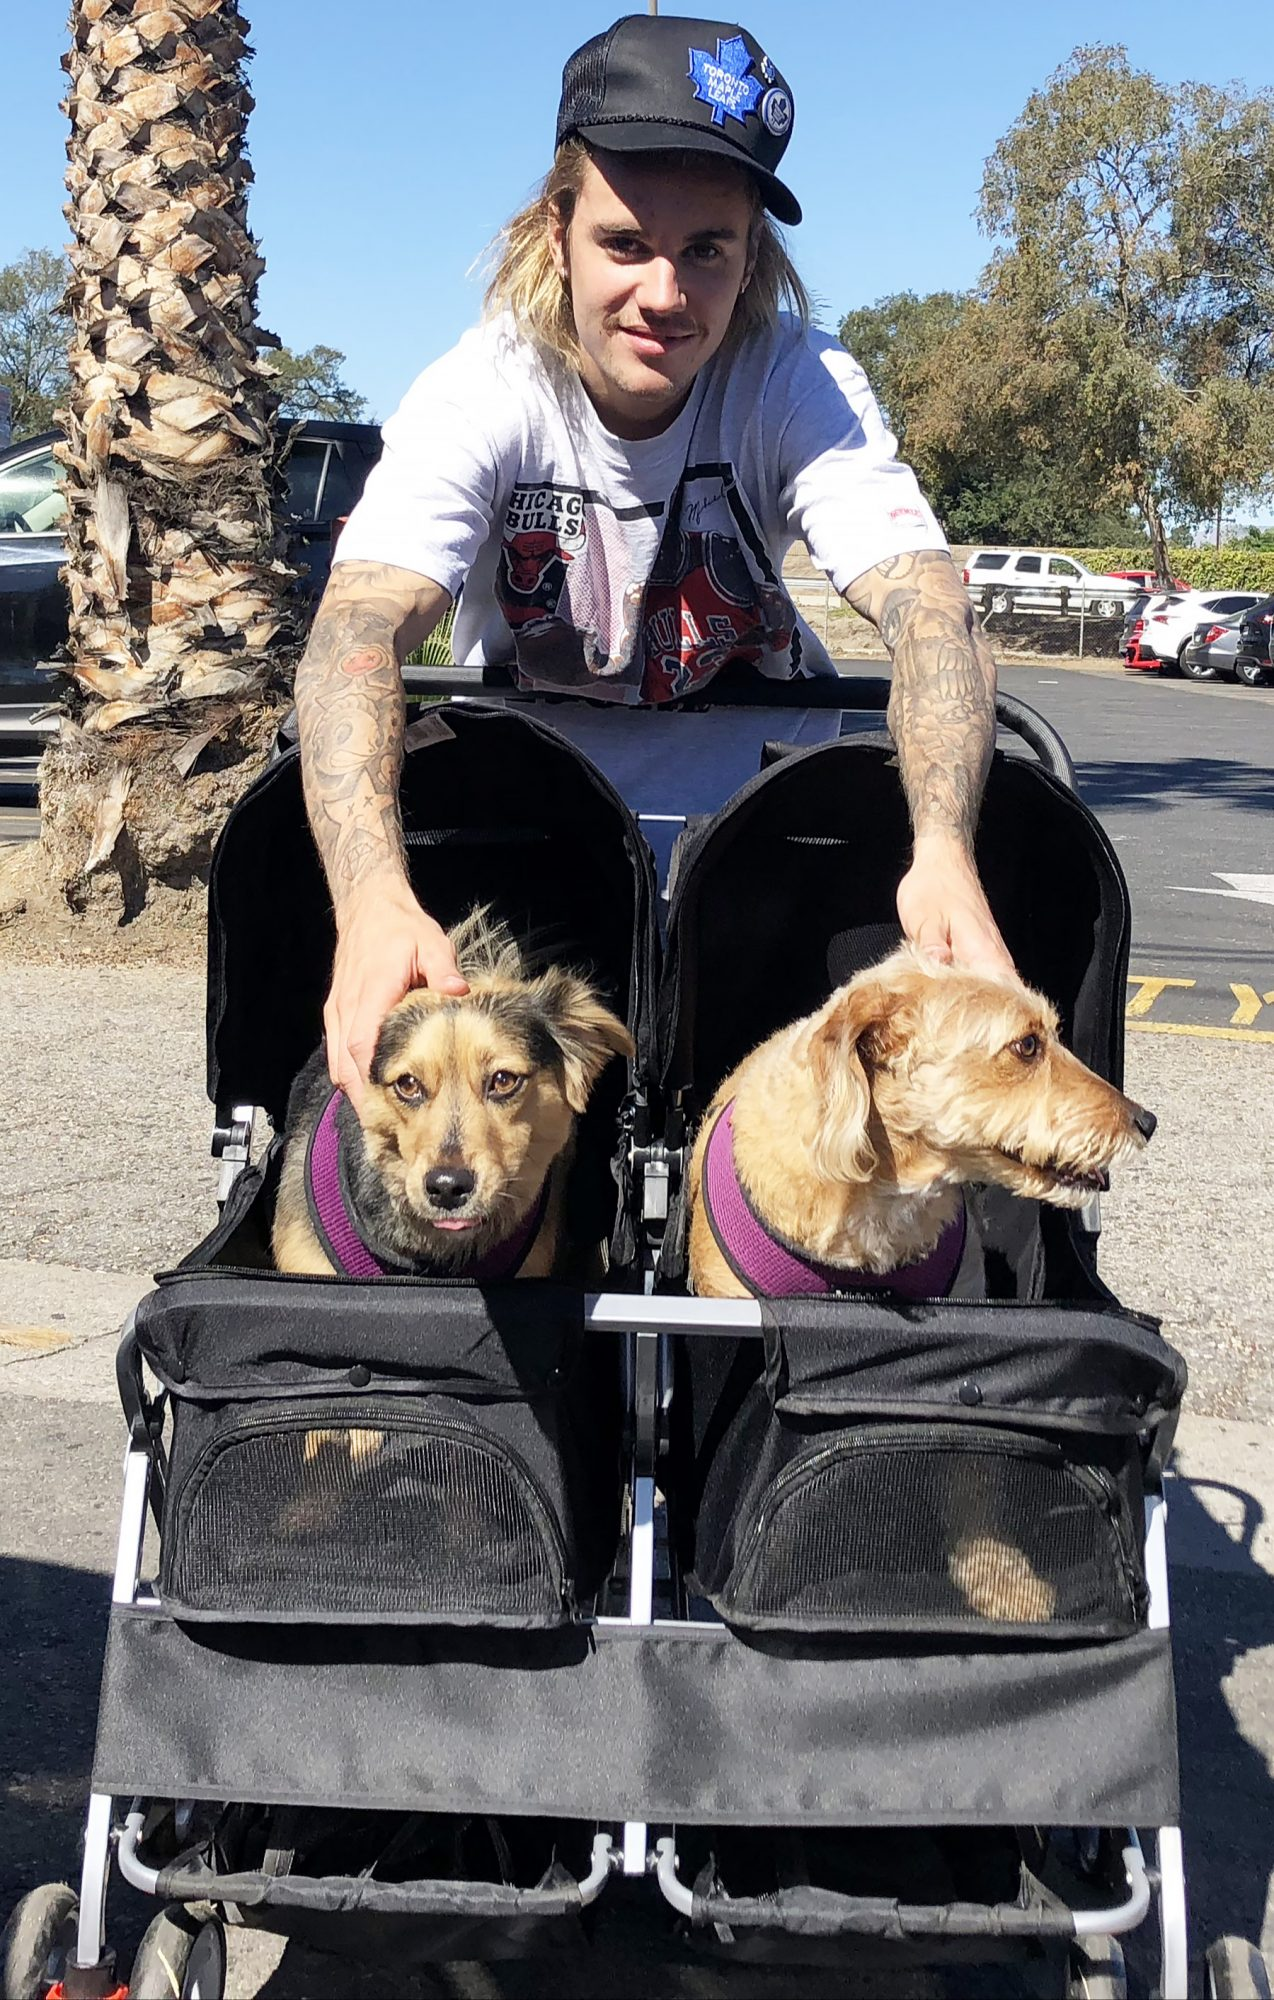 Justin Bieber poses with dogs before heading to soccer in Los Angeles, CA